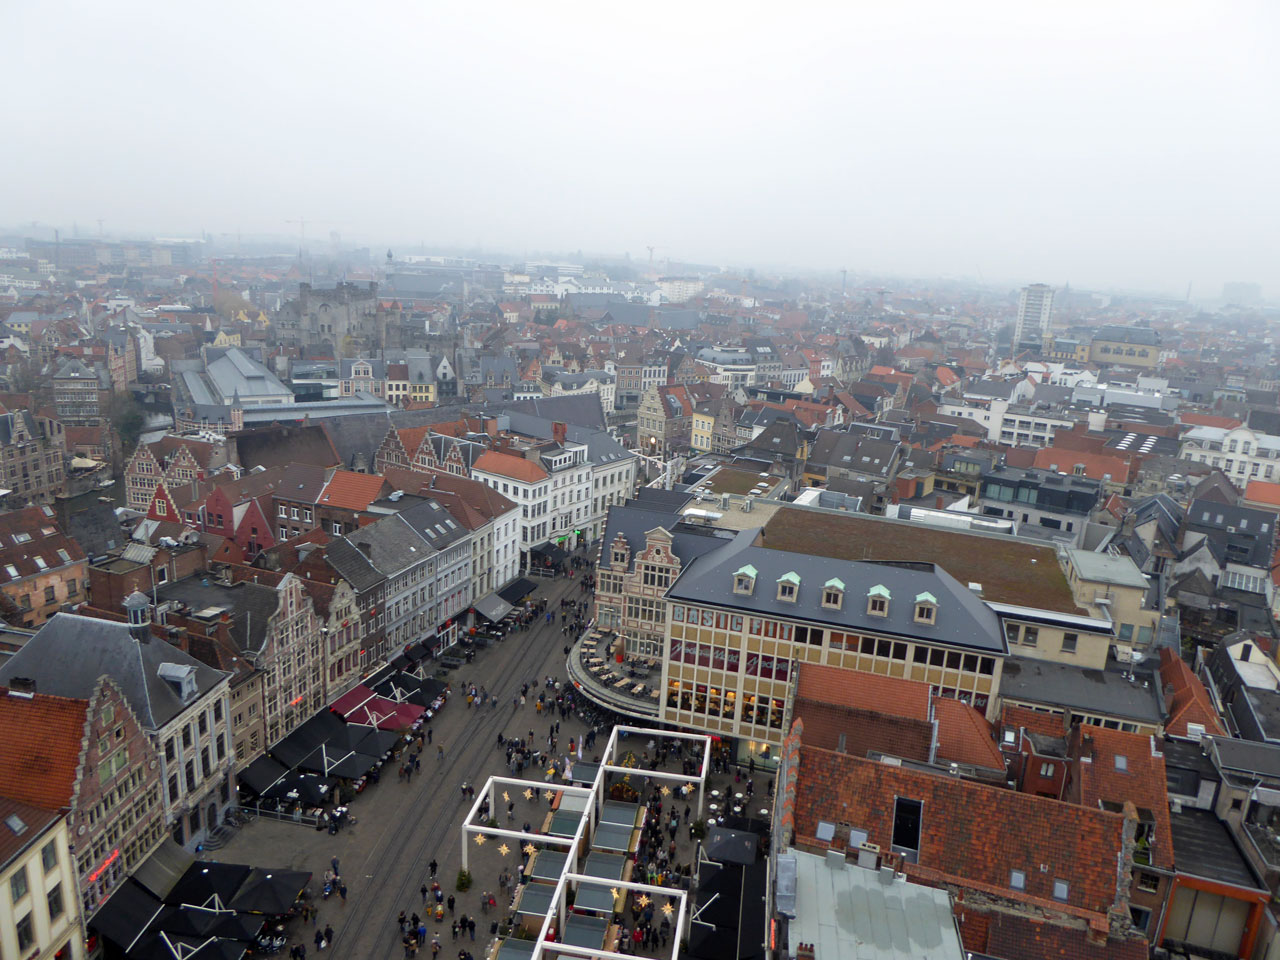 View of Ghent from the ferris wheel